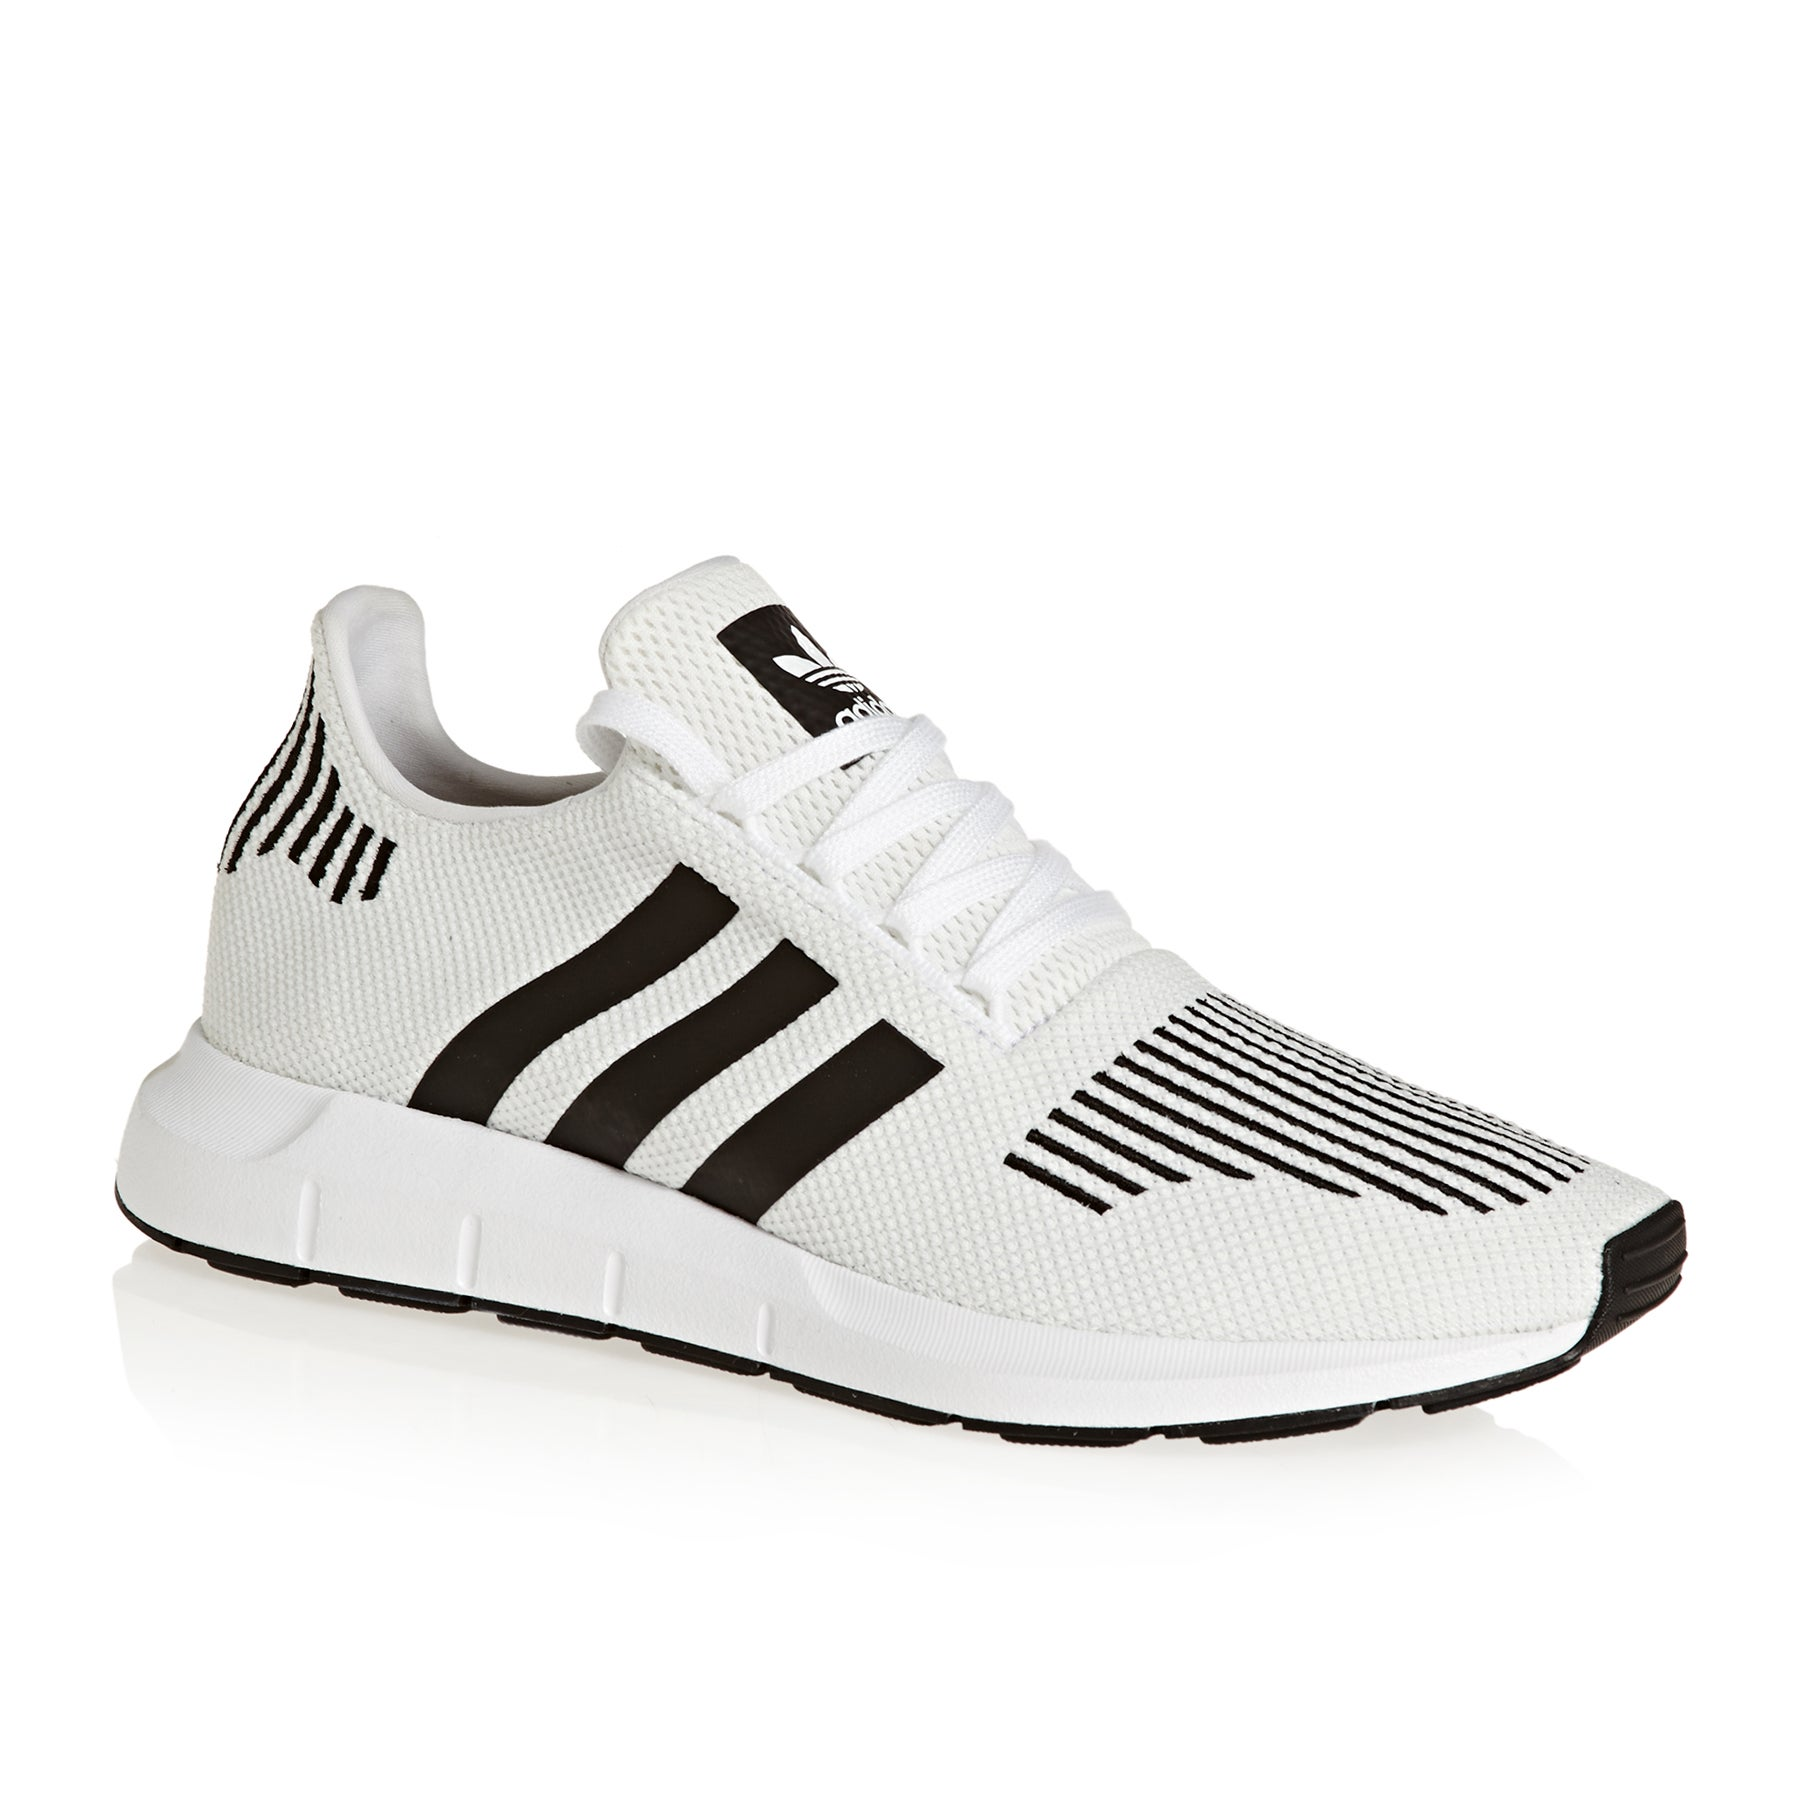 best sneakers c4391 650cb Item added to bag. Adidas Originals Swift Run Shoes